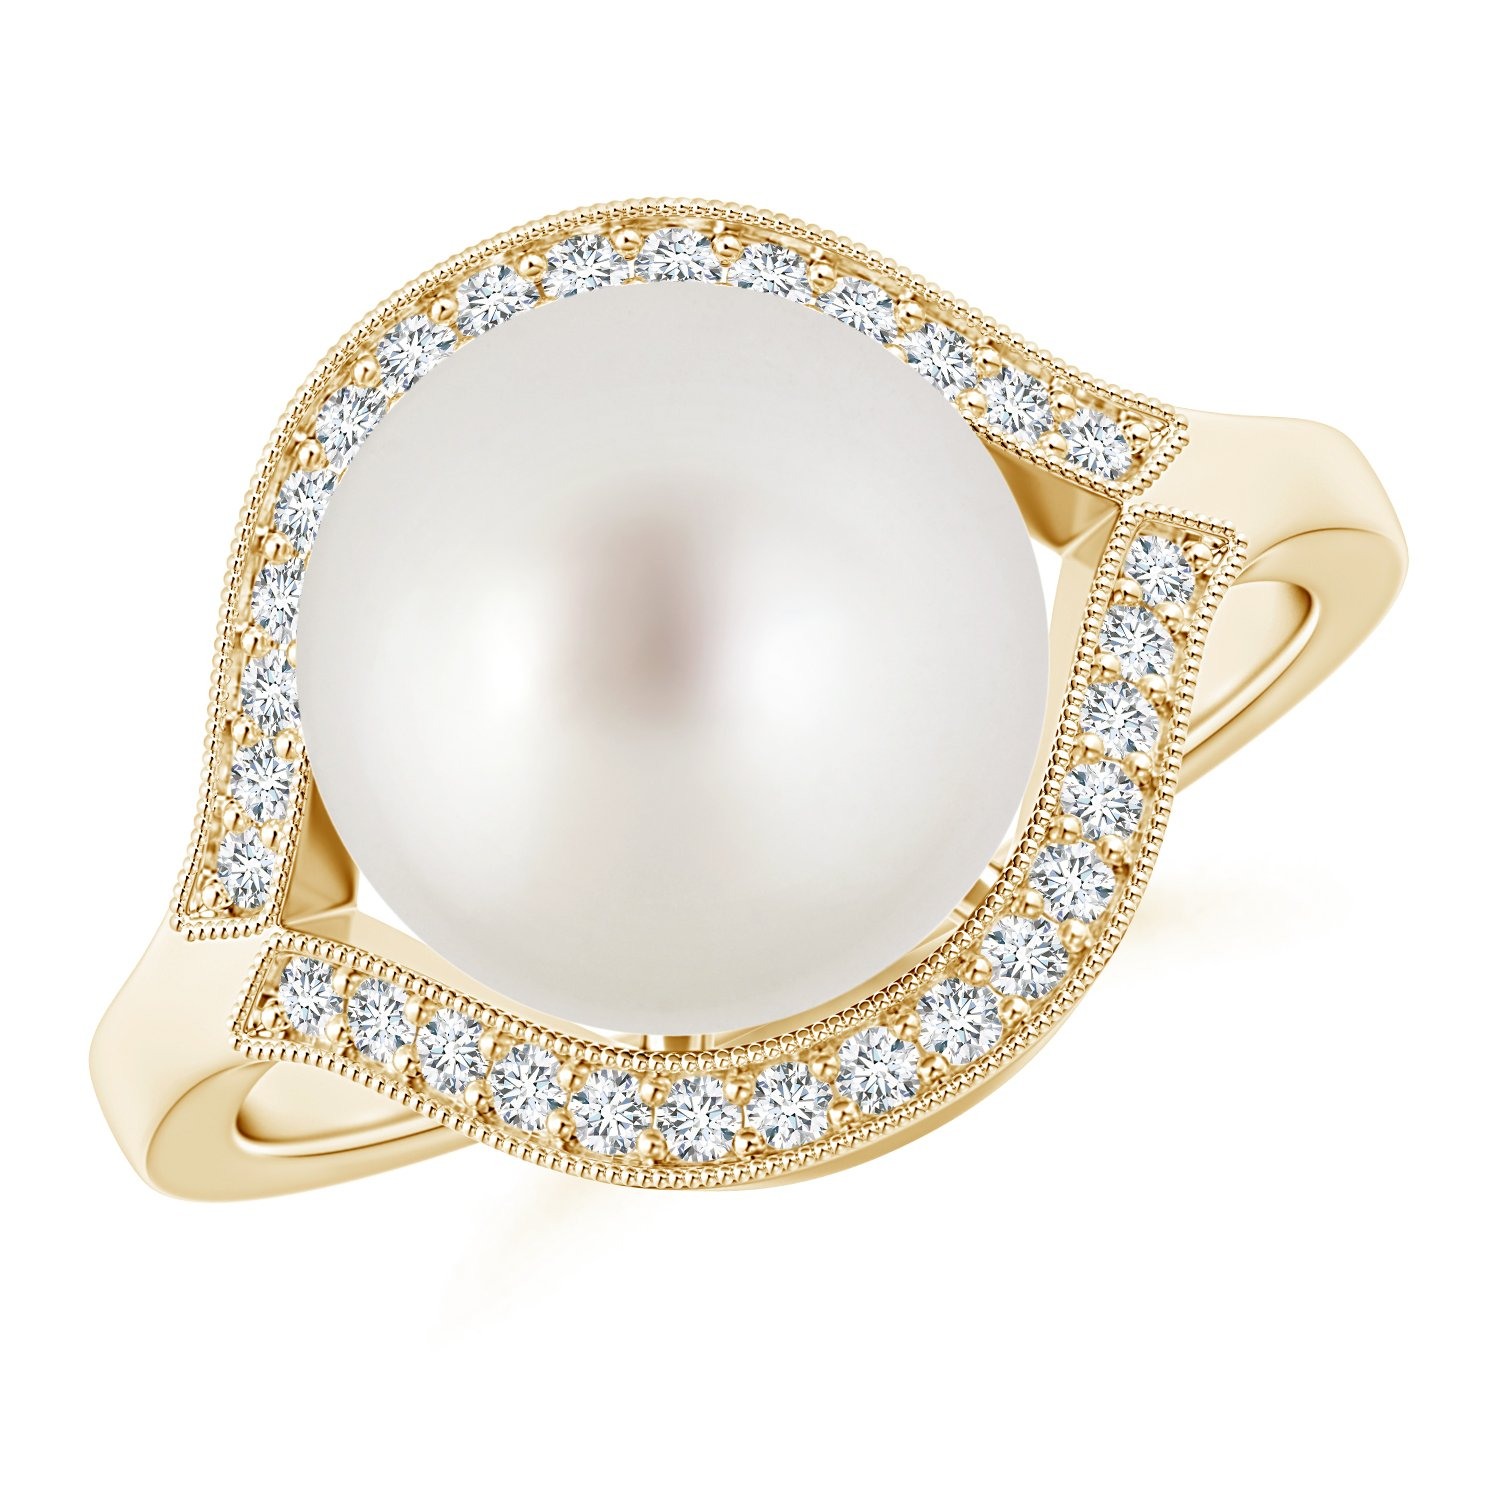 Round Solitaire South Sea Cultured Pearl Ring for Women with Wrapping Diamond in 14K Yellow Gold (10mm South Sea Cultured Pearl) by Angara.com